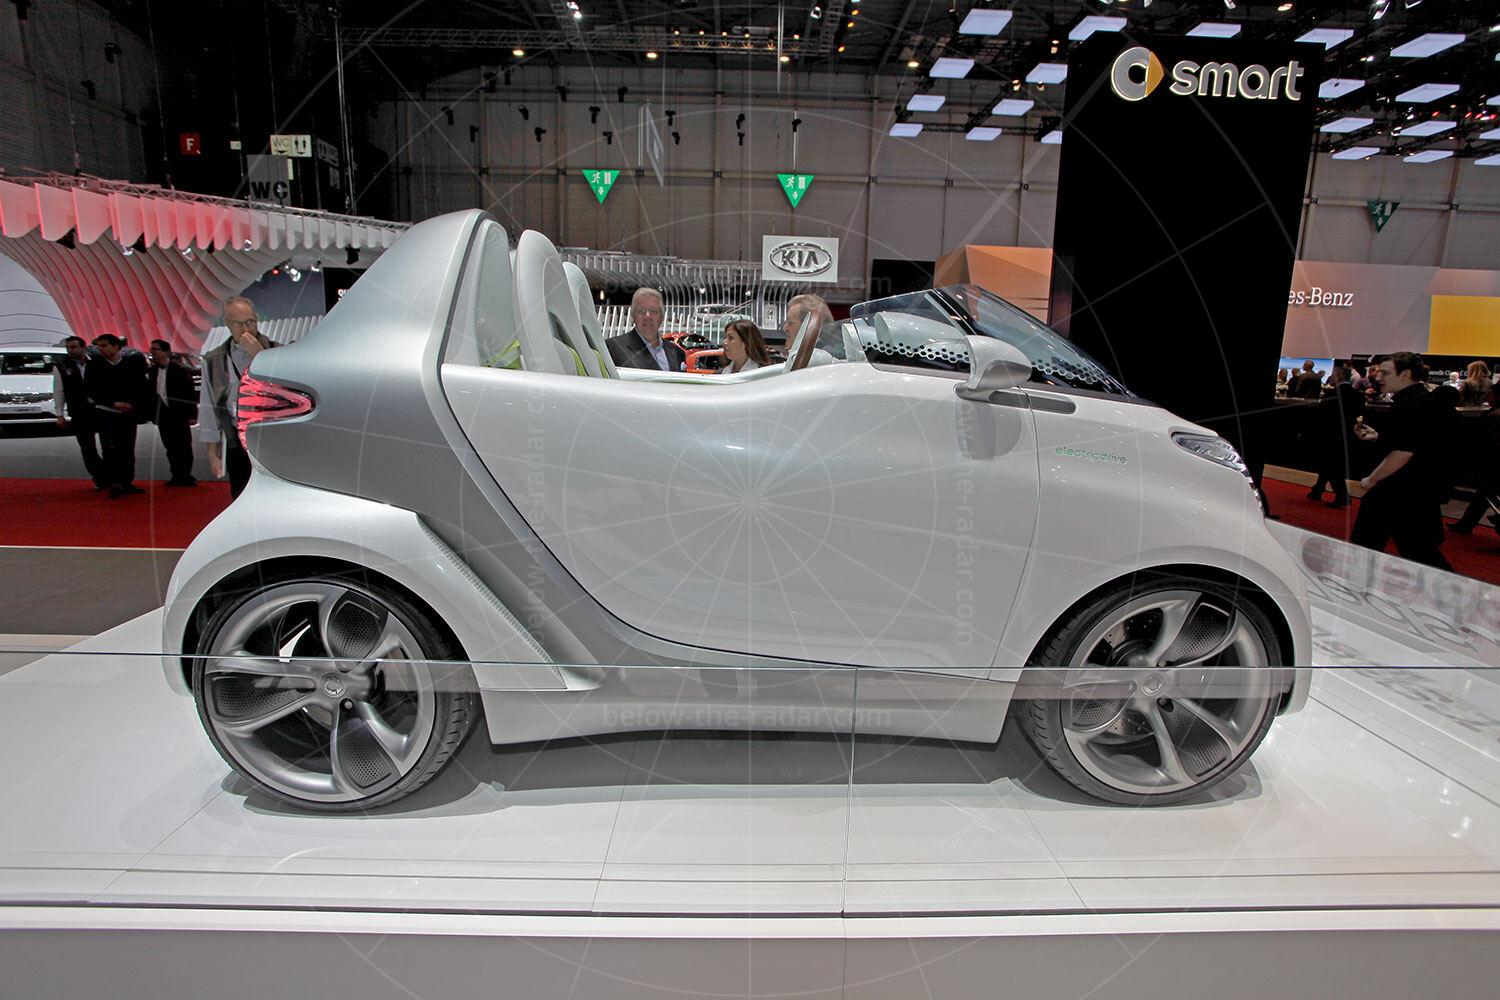 Smart ForSpeed concept at the 2011 Geneva motor show Pic: Smart | Smart ForSpeed concept at the 2011 Geneva motor show